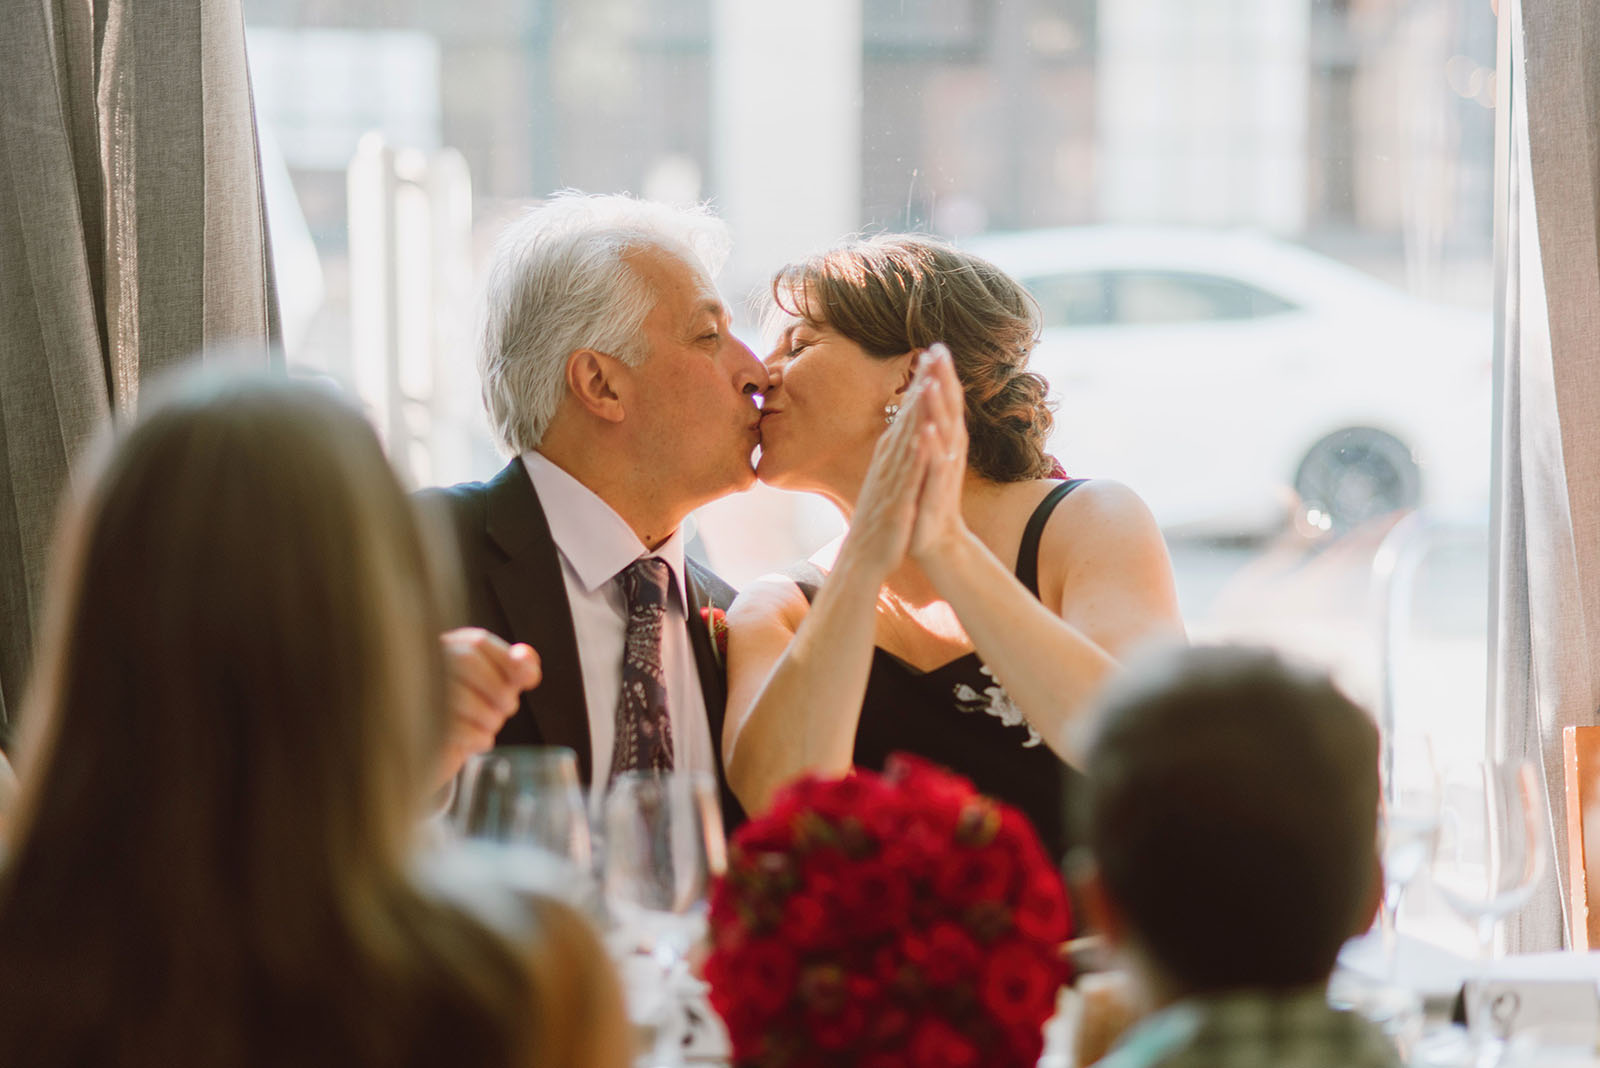 Bride and Groom kissing at Trattoria Gallo Nero